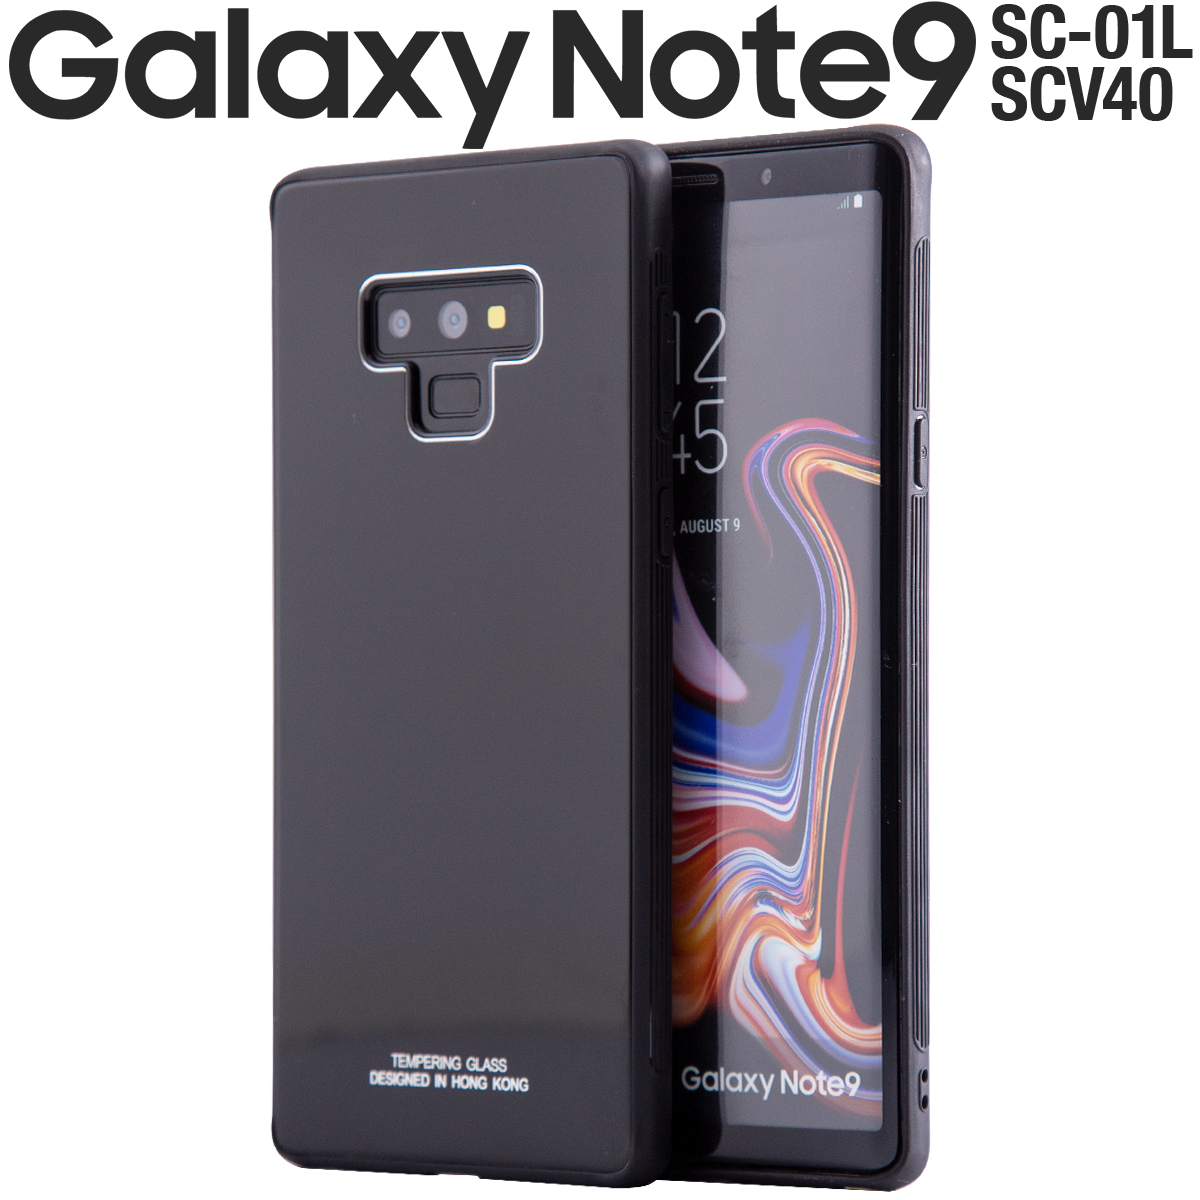 Galaxy Note9 SC-01L SCV40 背面9Hガラスケース